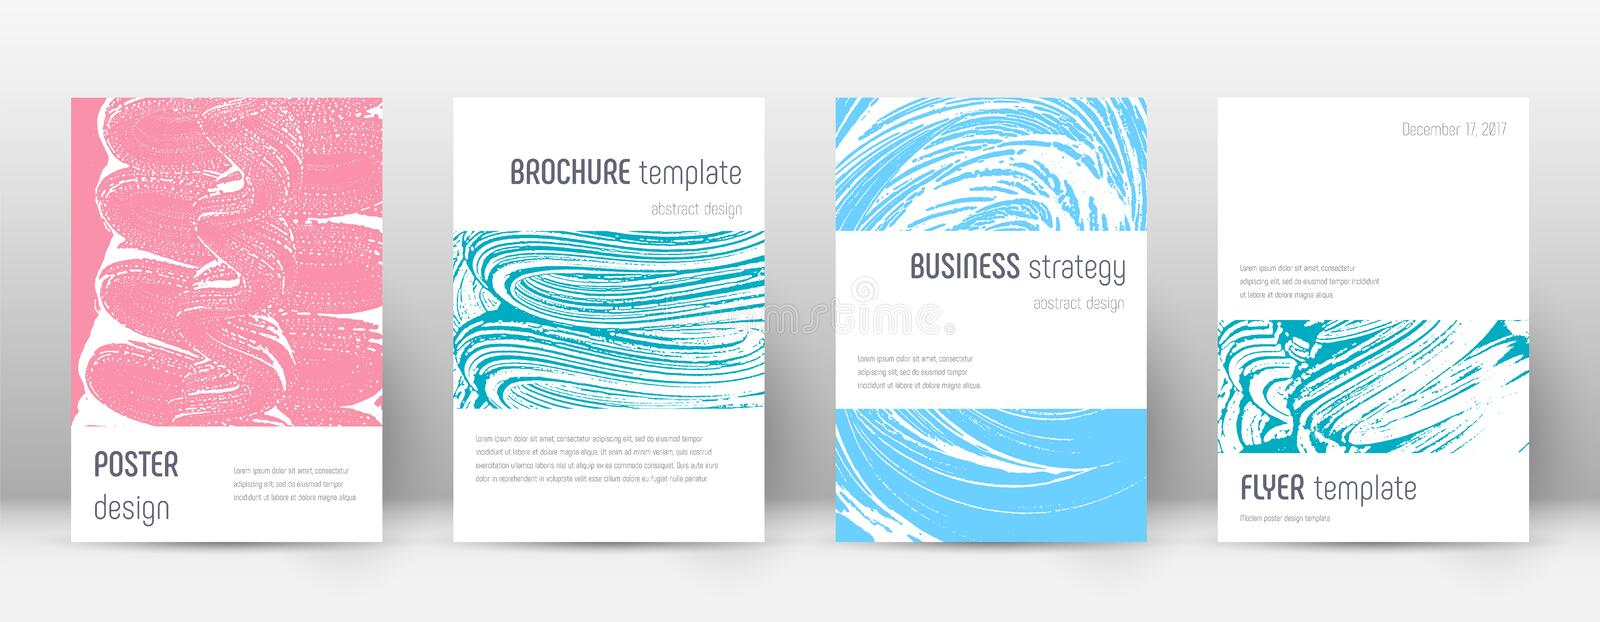 Cover page design template. Minimalistic brochure. Layout. Classy trendy abstract cover page. Pink and blue grunge texture background. Curious poster stock illustration